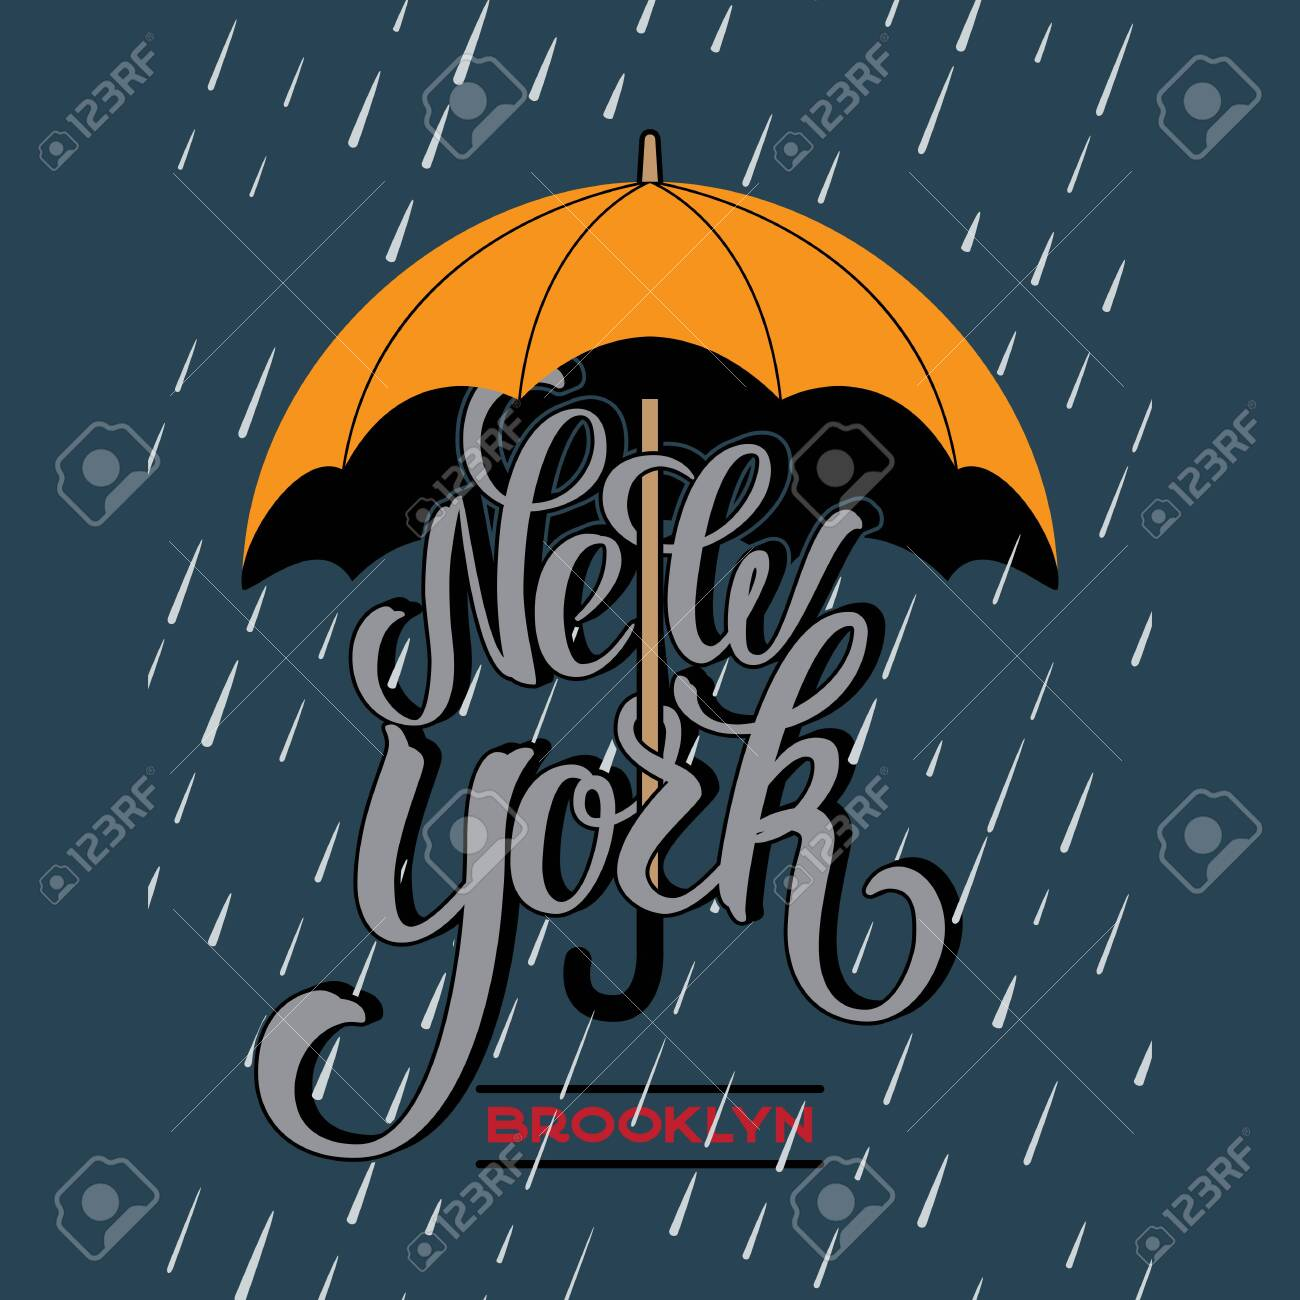 New York brush lettering design under a yellow umbrella protecting from rain drop. - 128474943